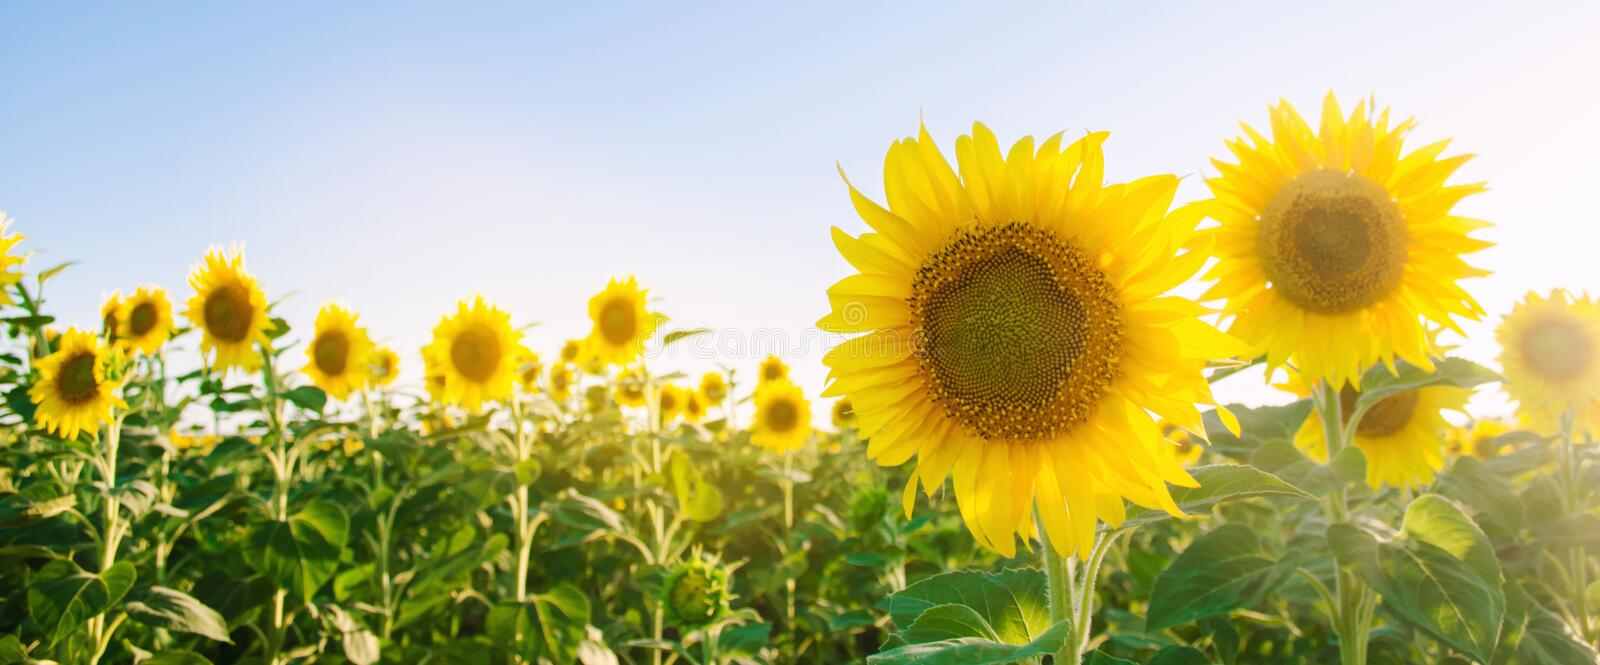 Beautiful young sunflower growing in a field at sunset. Agriculture and farming. Agricultural crops. Helianthus. Natural. Background. Yellow flower. Ukraine stock image